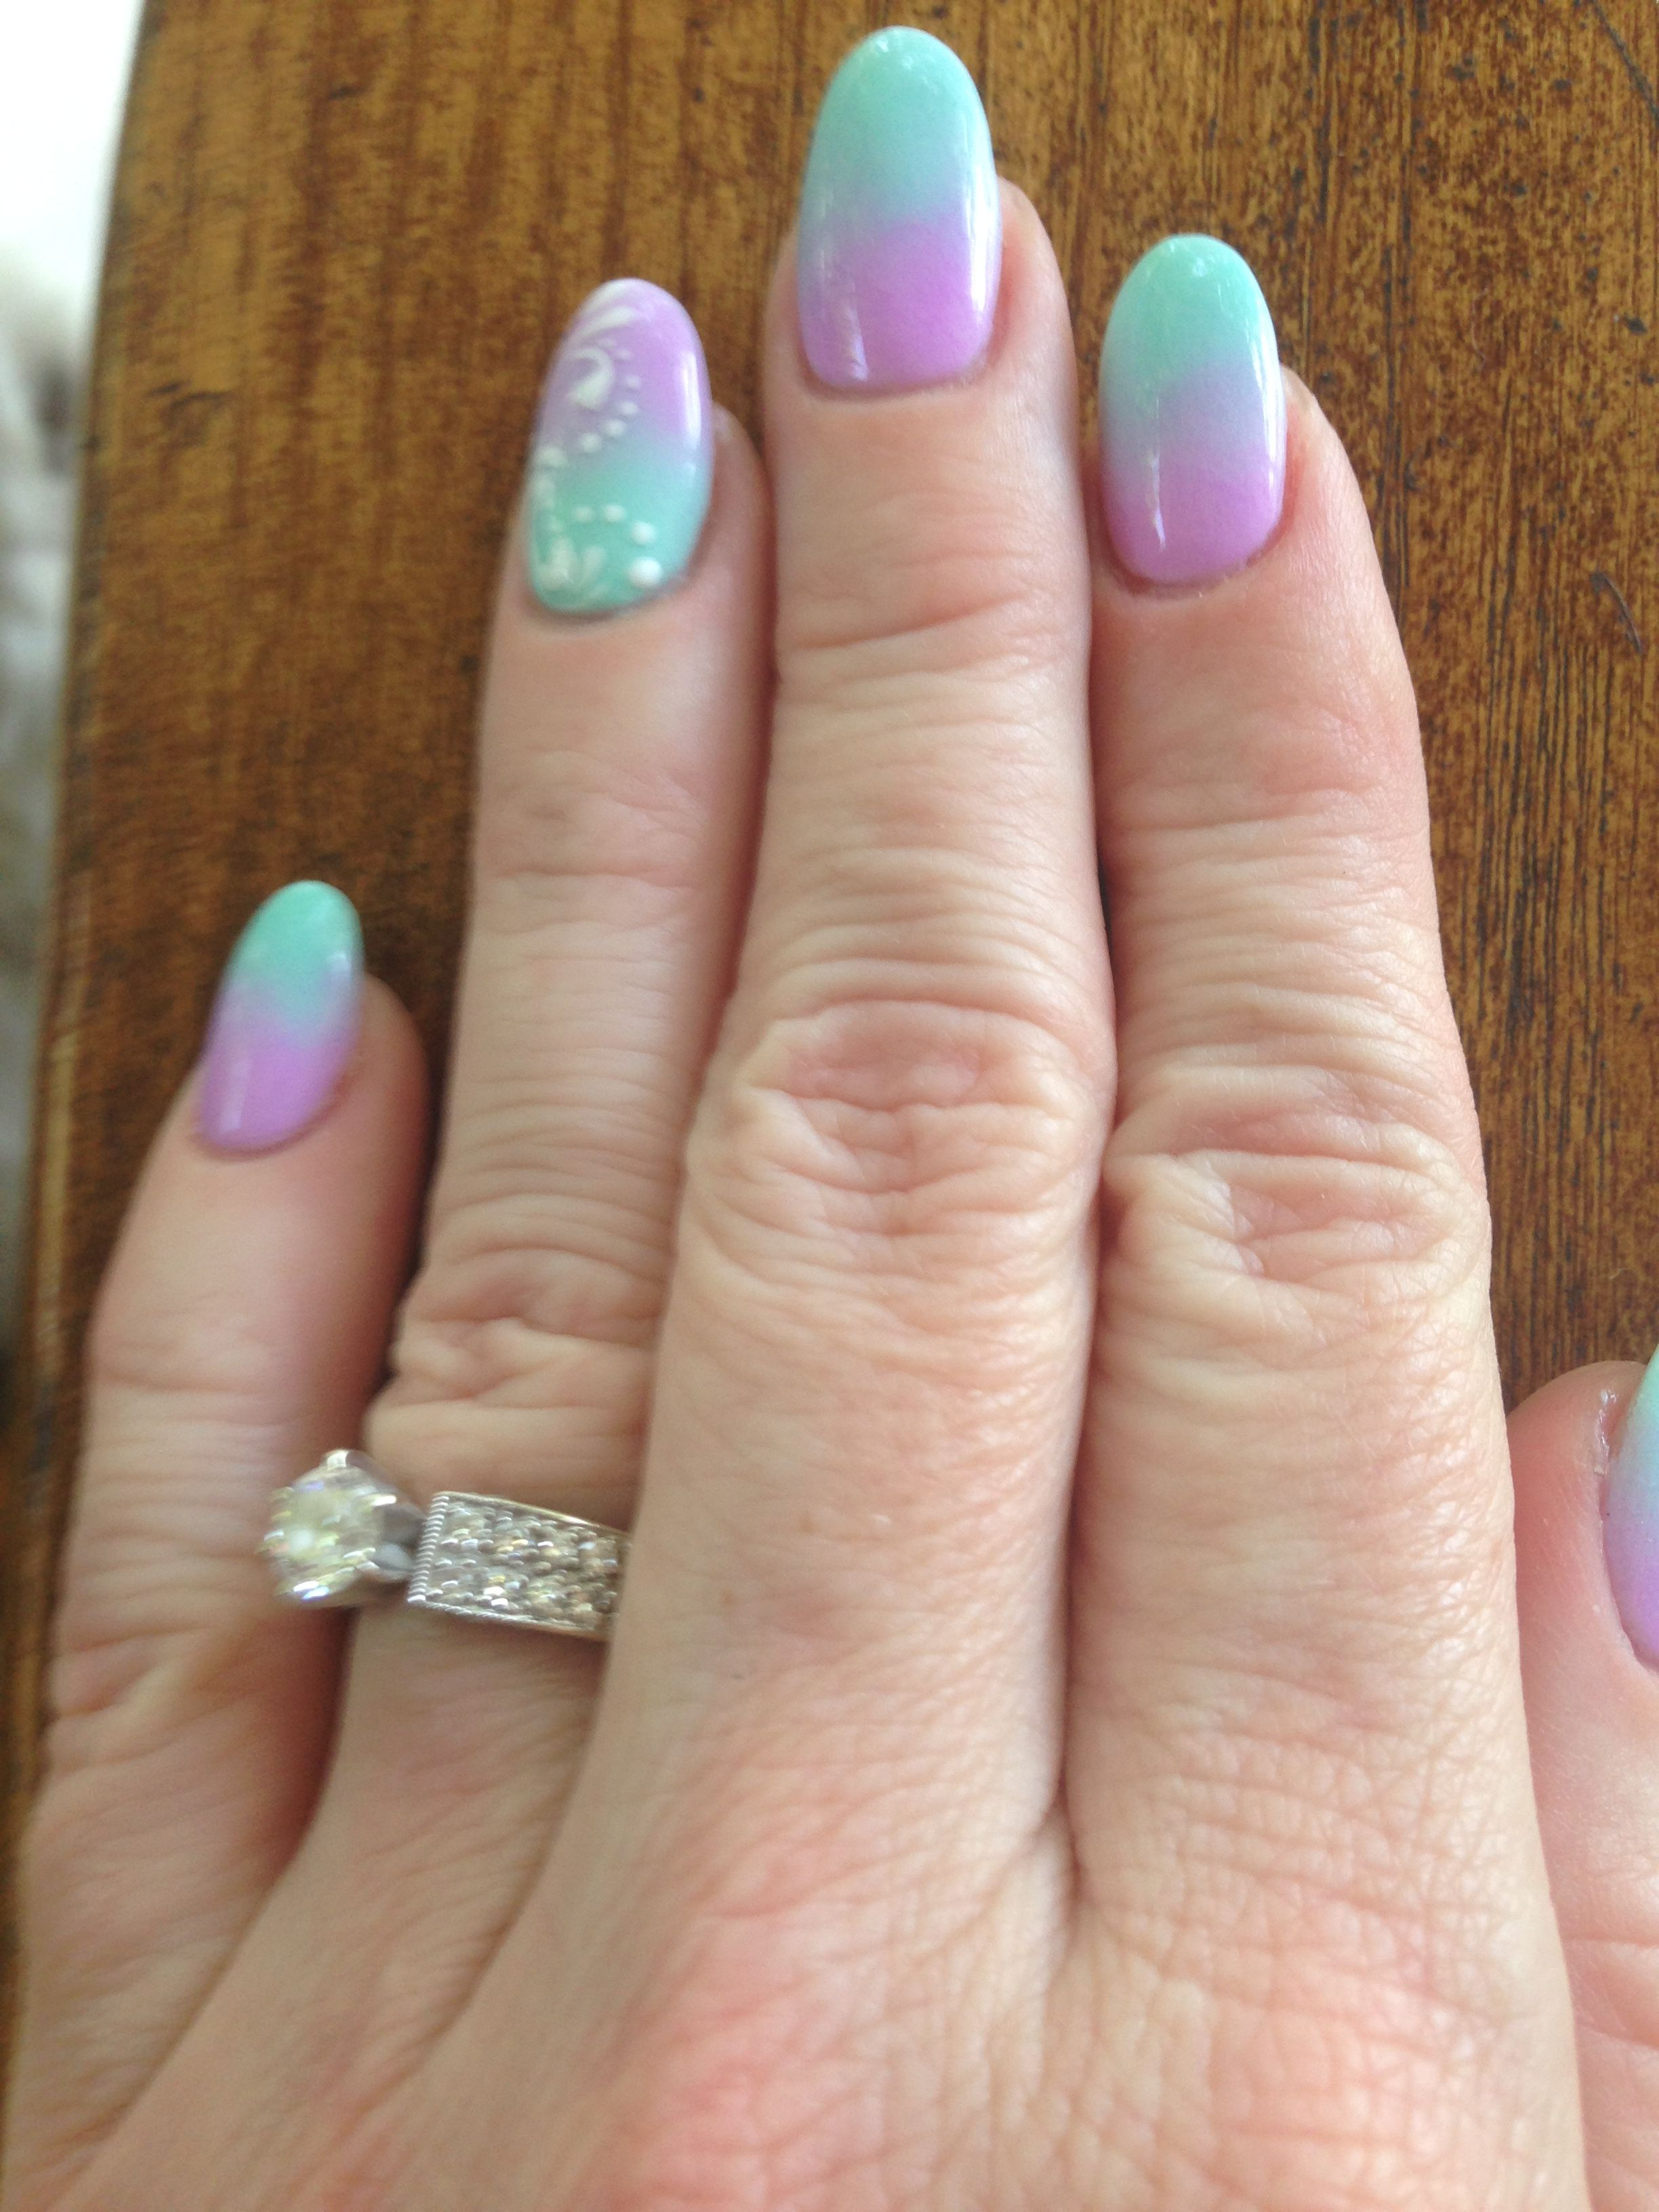 Dipping Powder Ombre Nails Teal And Lilac With A White Swirl Design Dip Powder Nails Ombre Nails Powder Nails